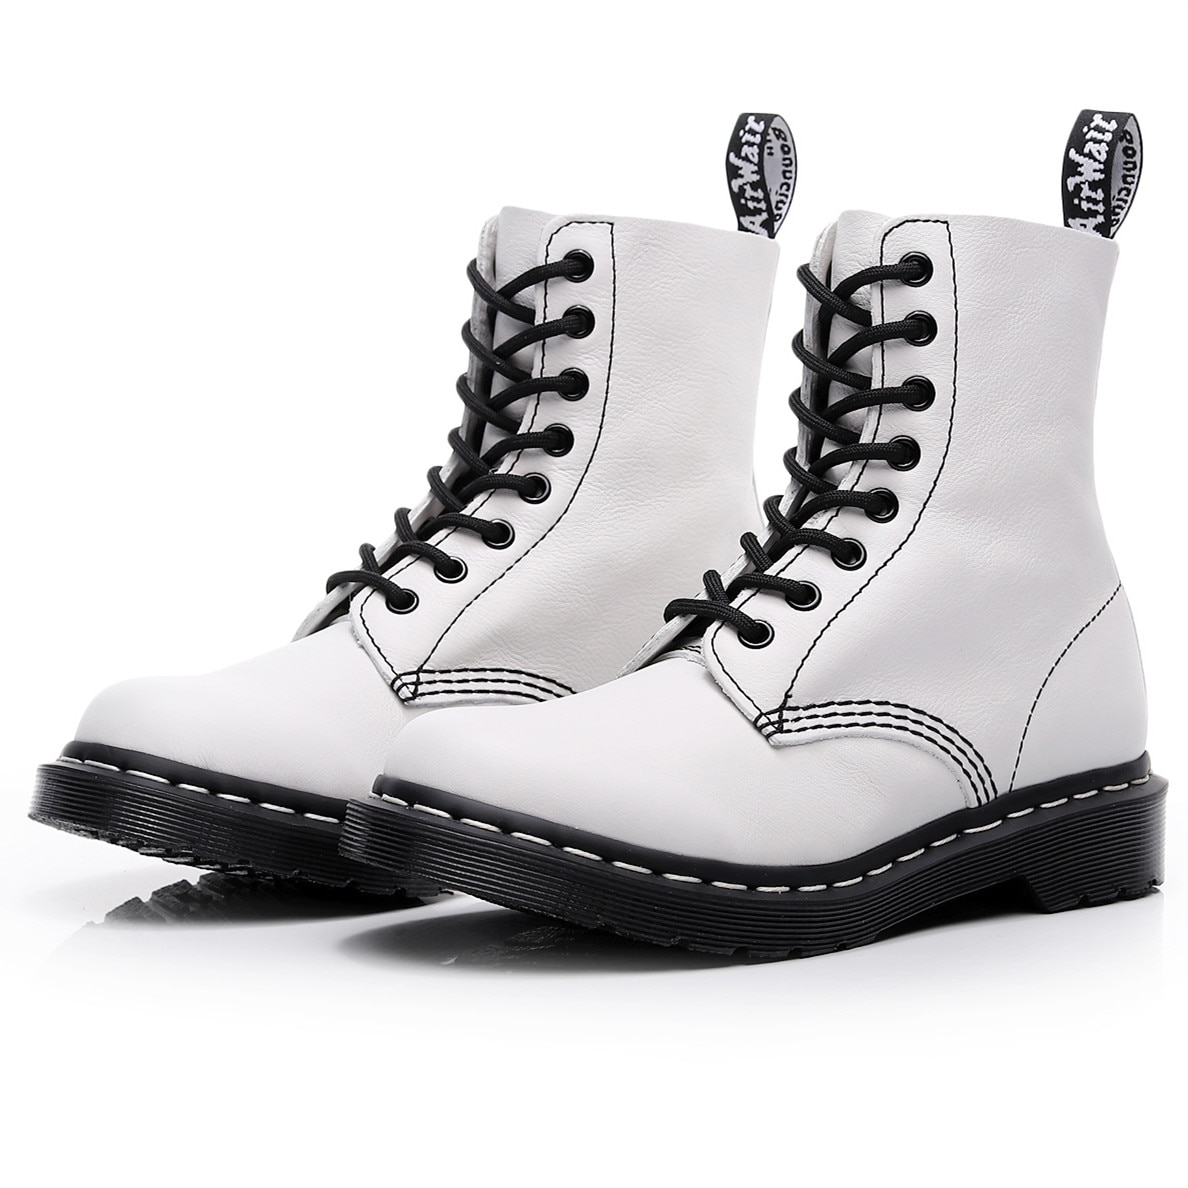 2021 Martens boots Genuine Leather boots fashion Female Martin boots top womens Thick bottom motorcy